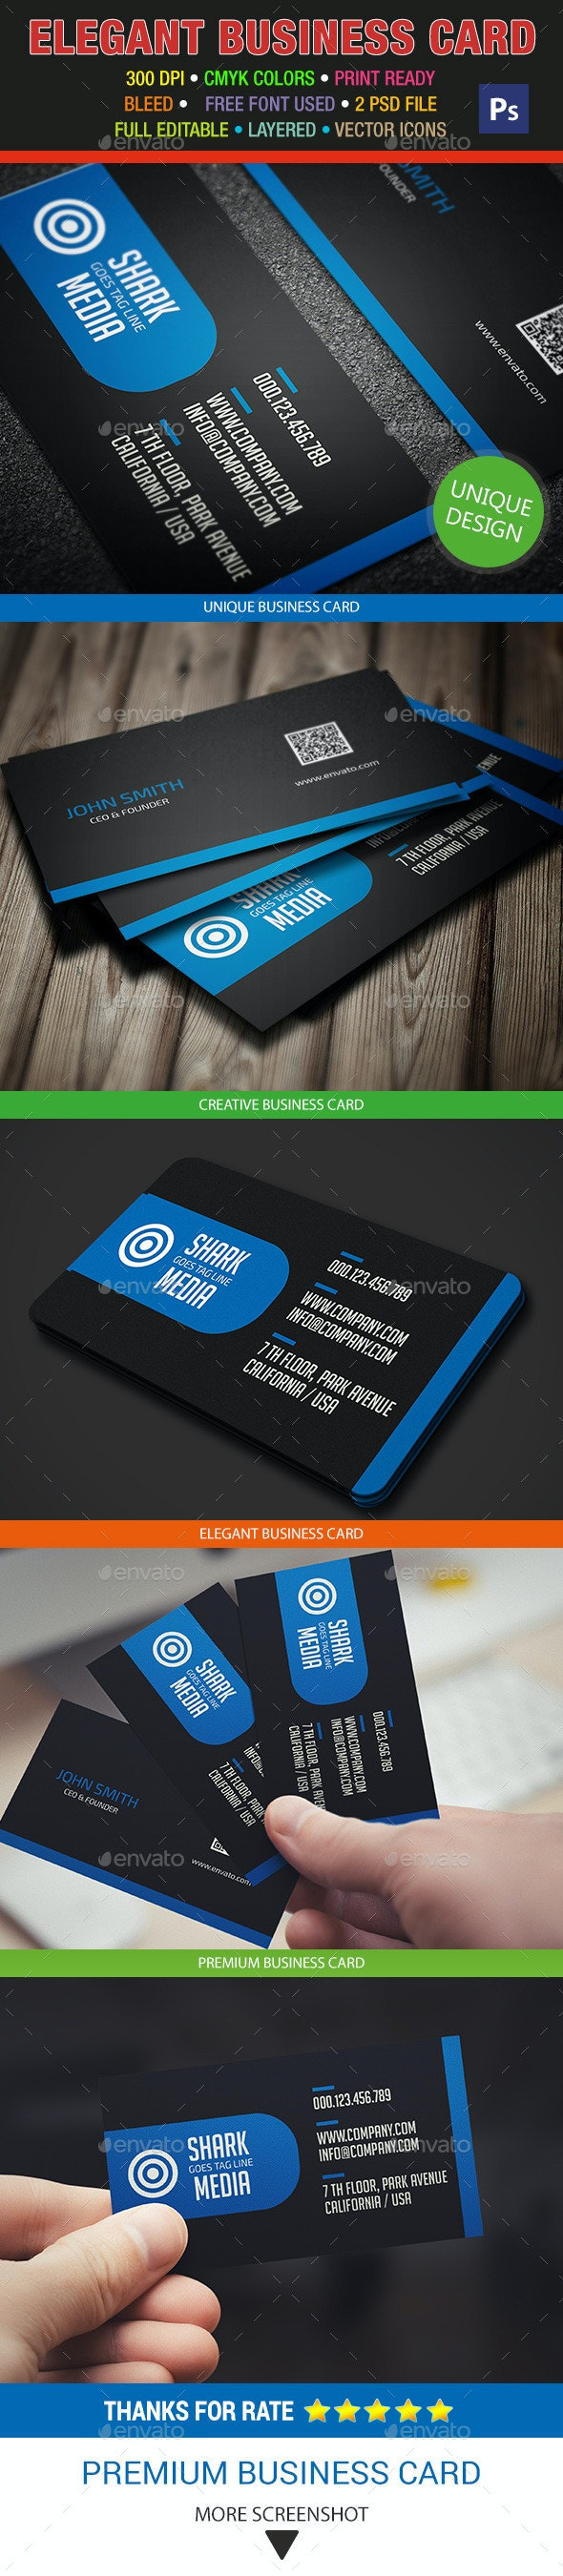 Elegant Business Card 329 - Corporate Business Cards